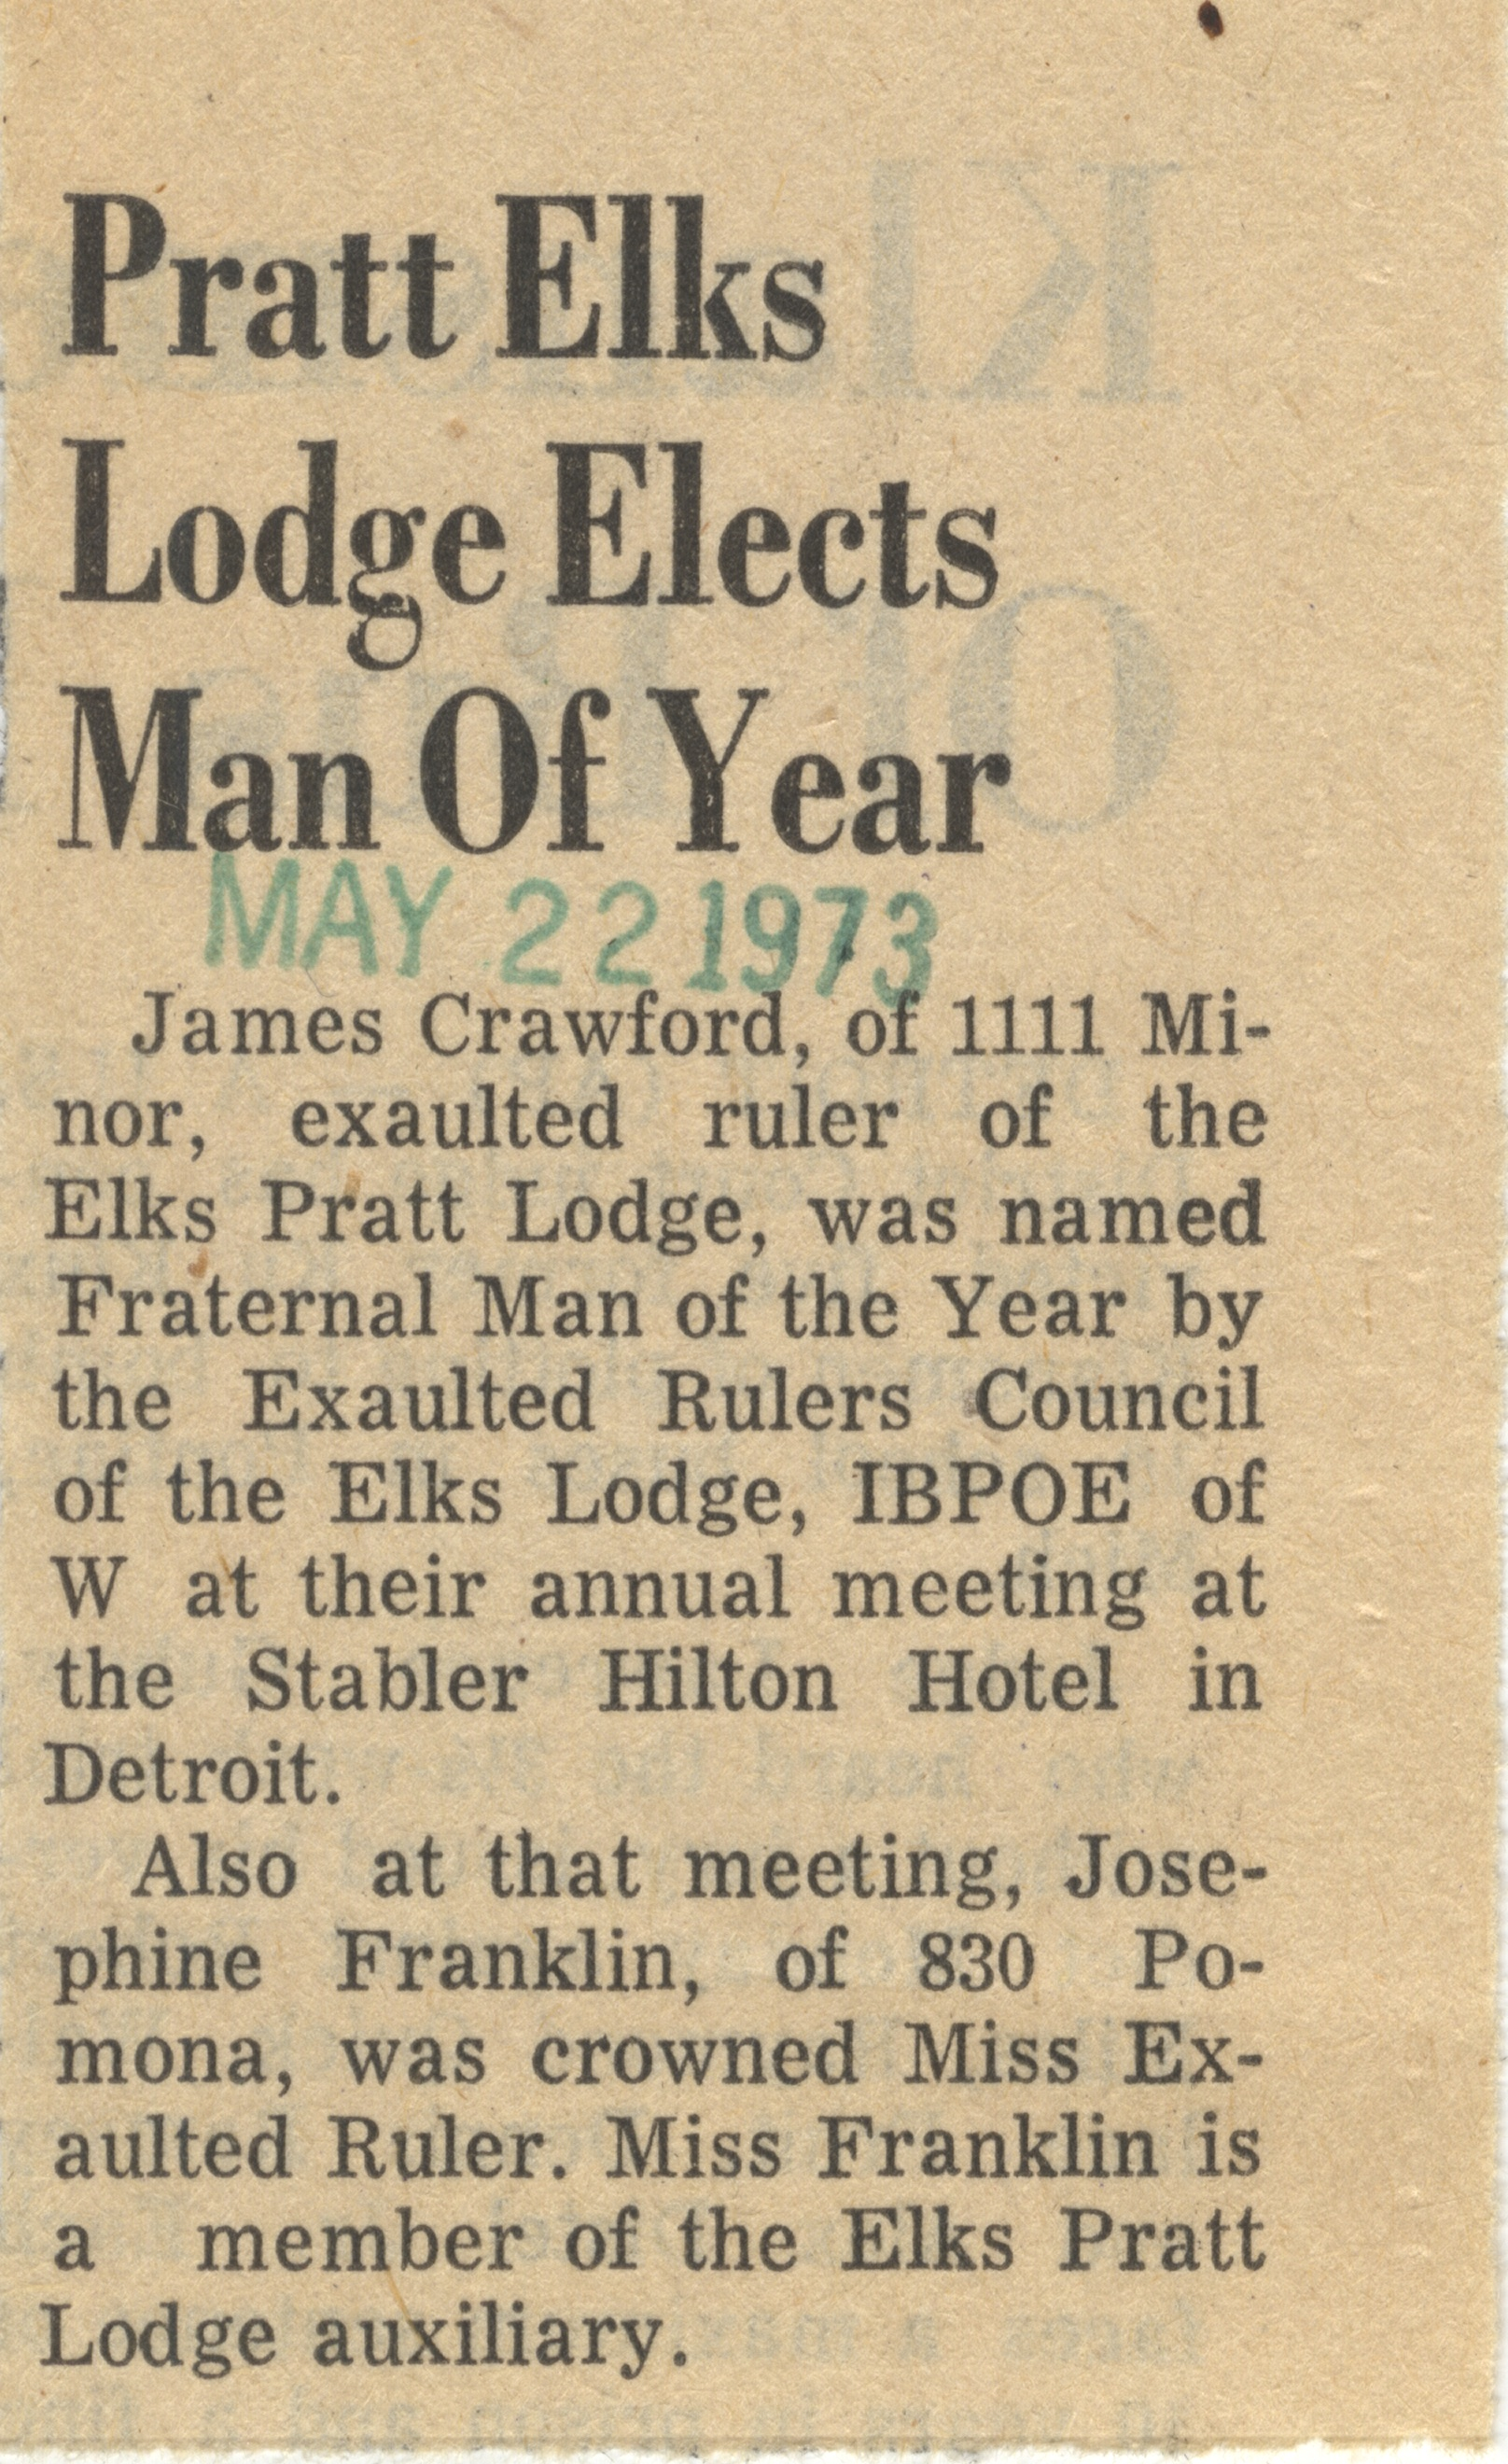 Pratt Lodge Elks Lodge Elects Man Of Year image